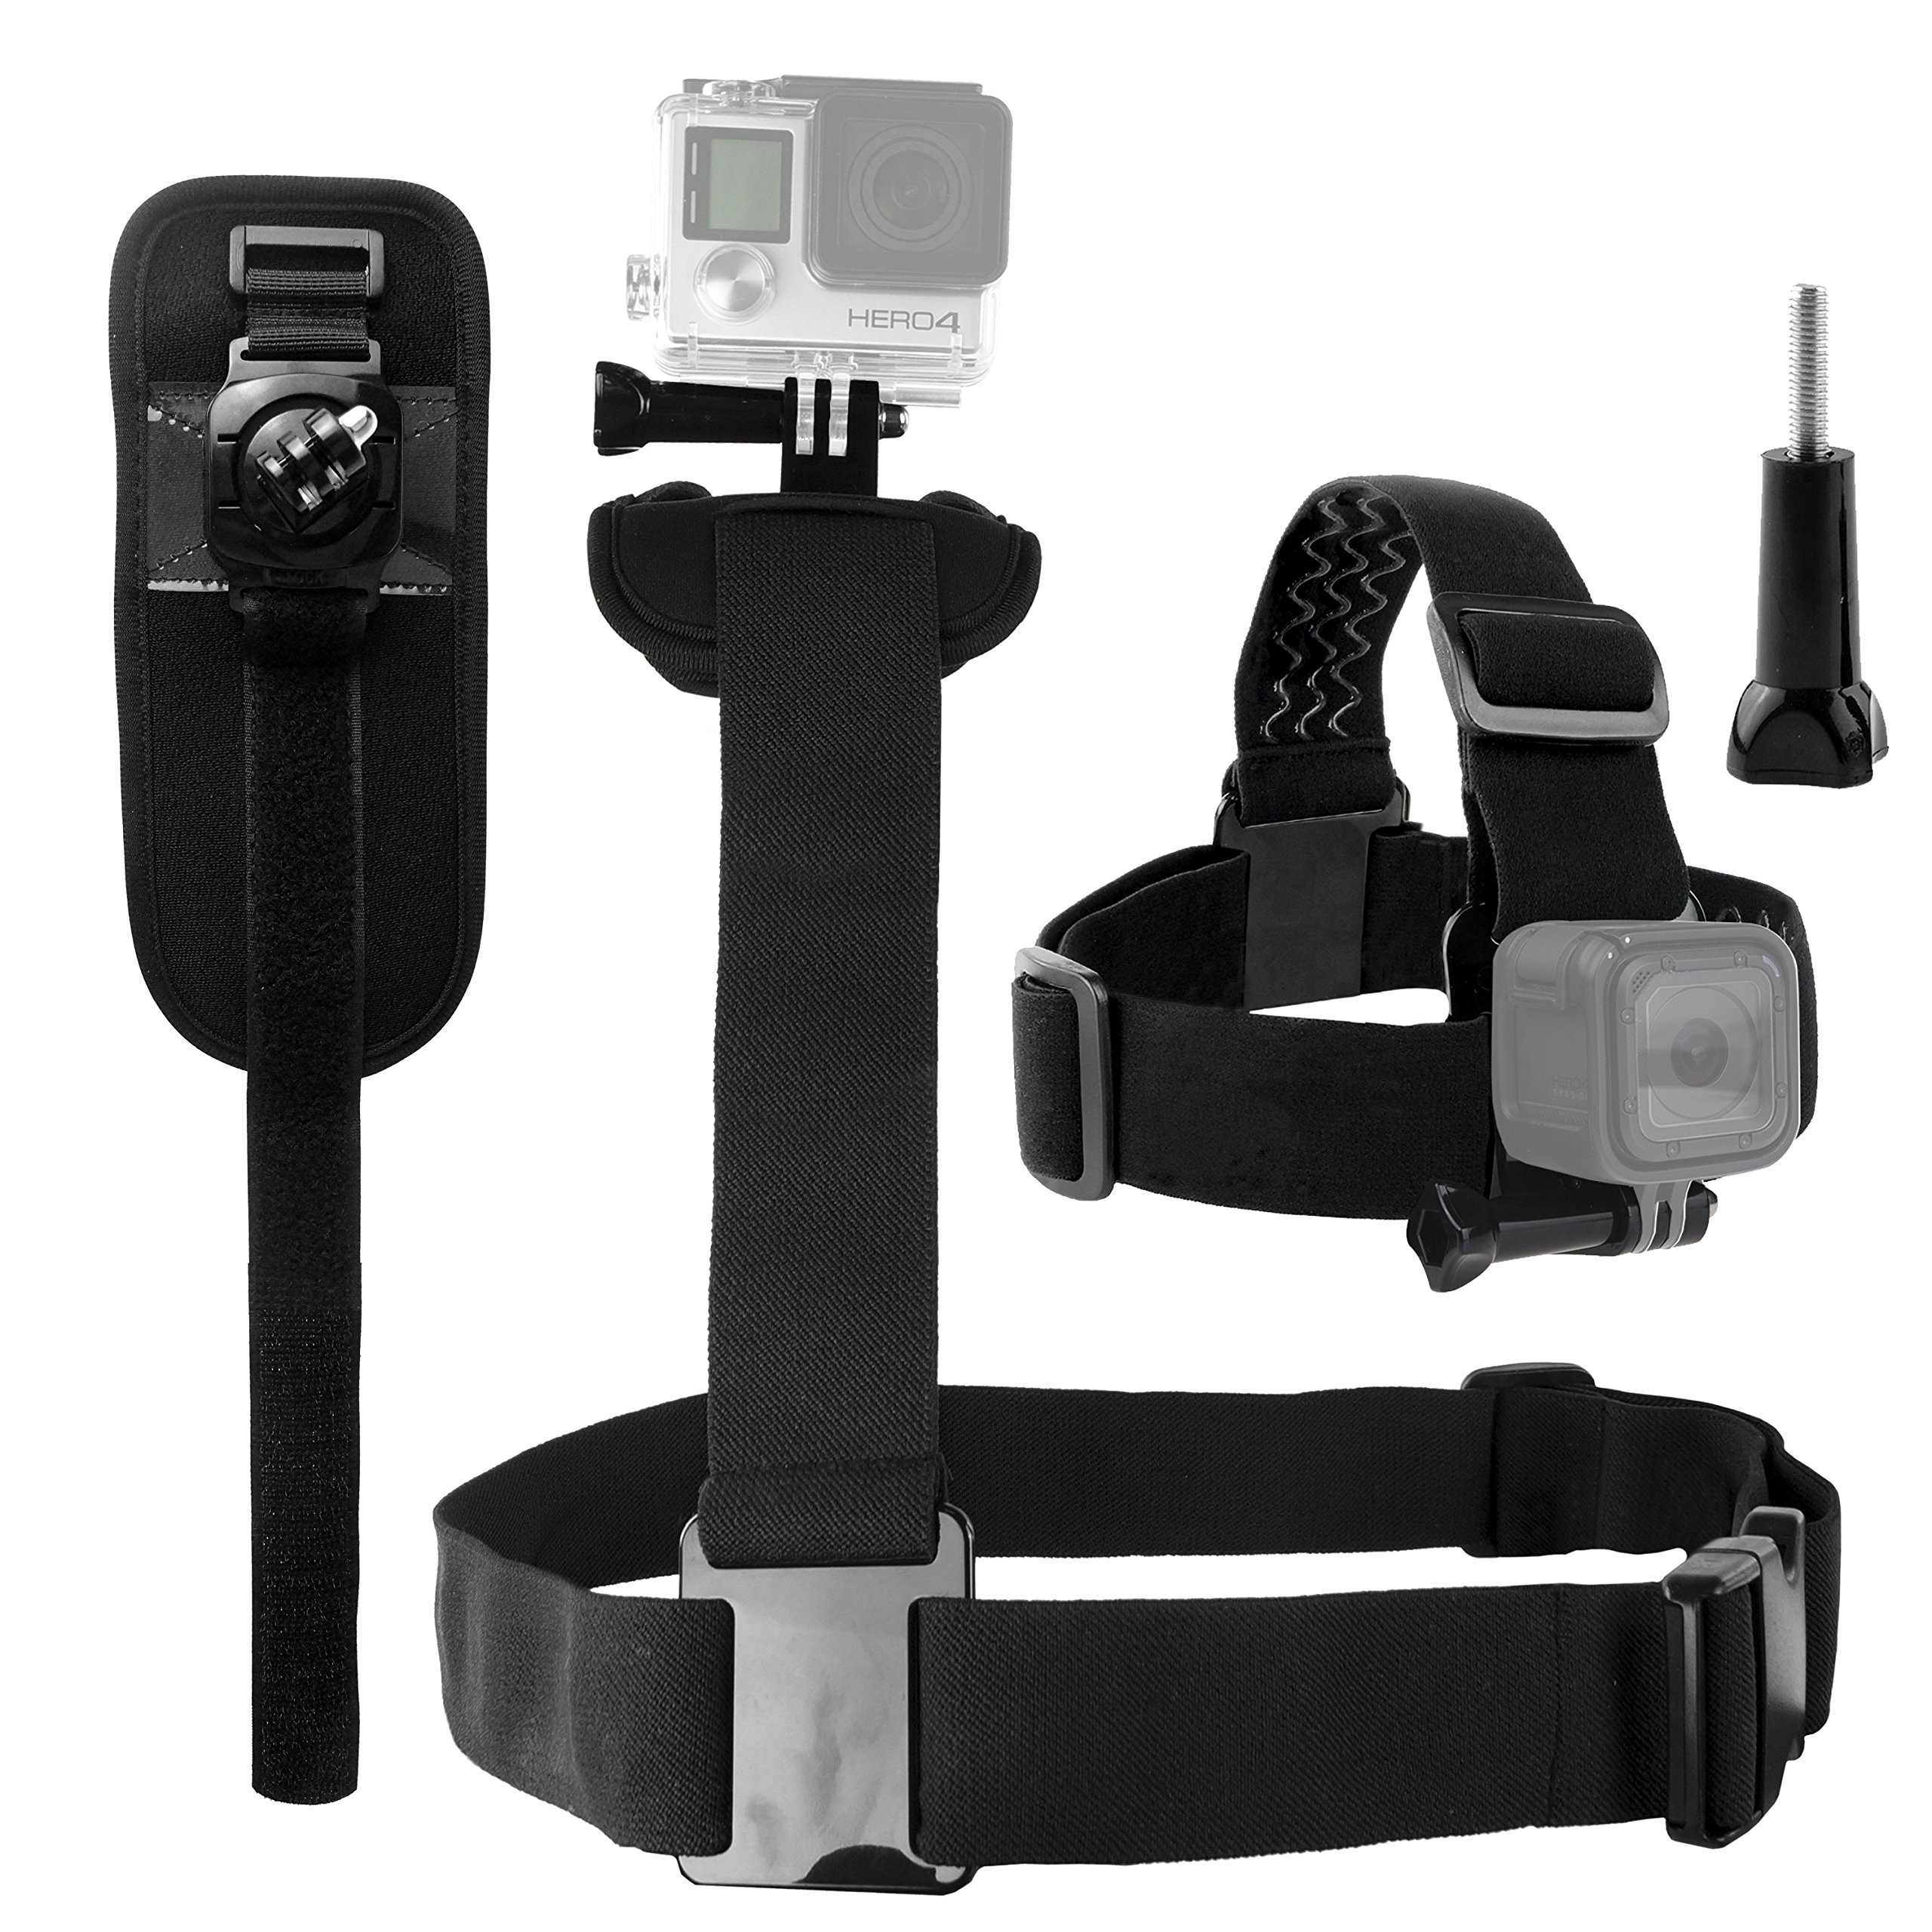 CamKix Body Mount Bundle for Gopro Hero 6, 5, Black, Session, Hero 4, Session, Black, Silver, Hero+ LCD, 3+, 3, 2, 1 – Shoulder Harness Mount/Head Strap Mount/Rotating Wrist Mount/Thumbscrew